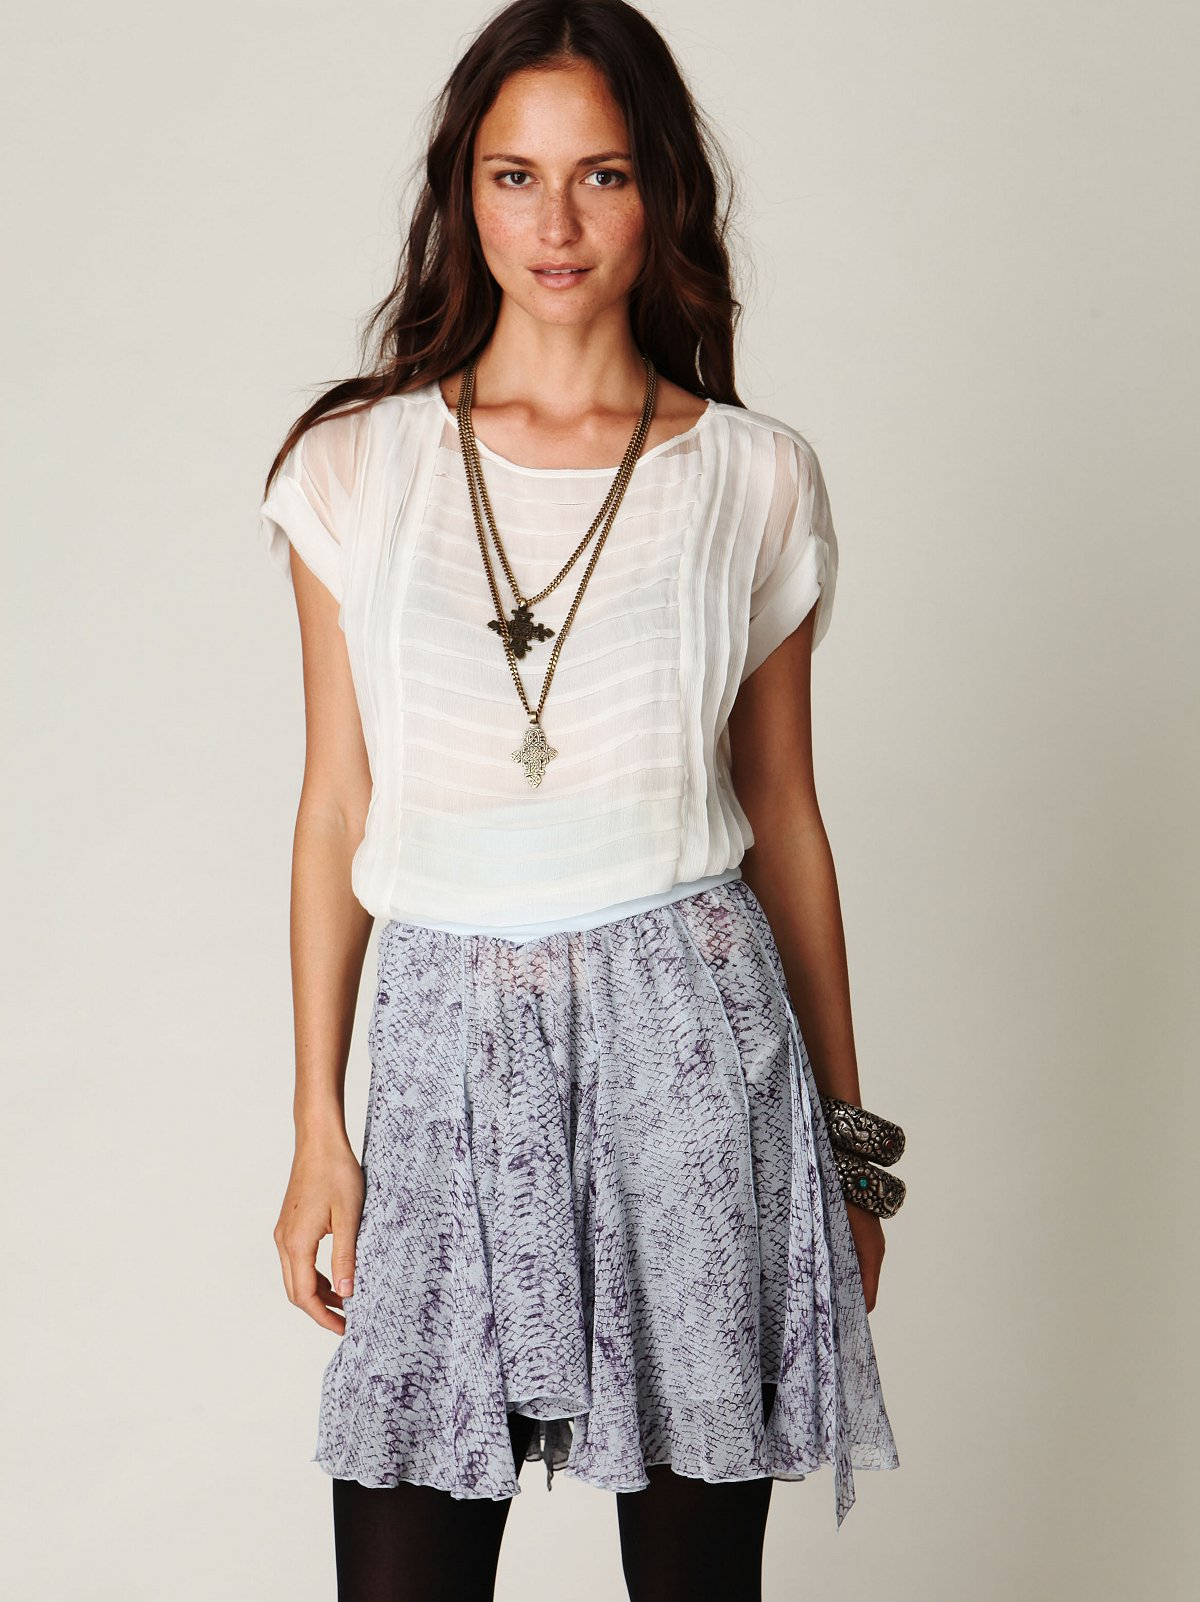 Feathered Wings Printed Chiffon Skirt